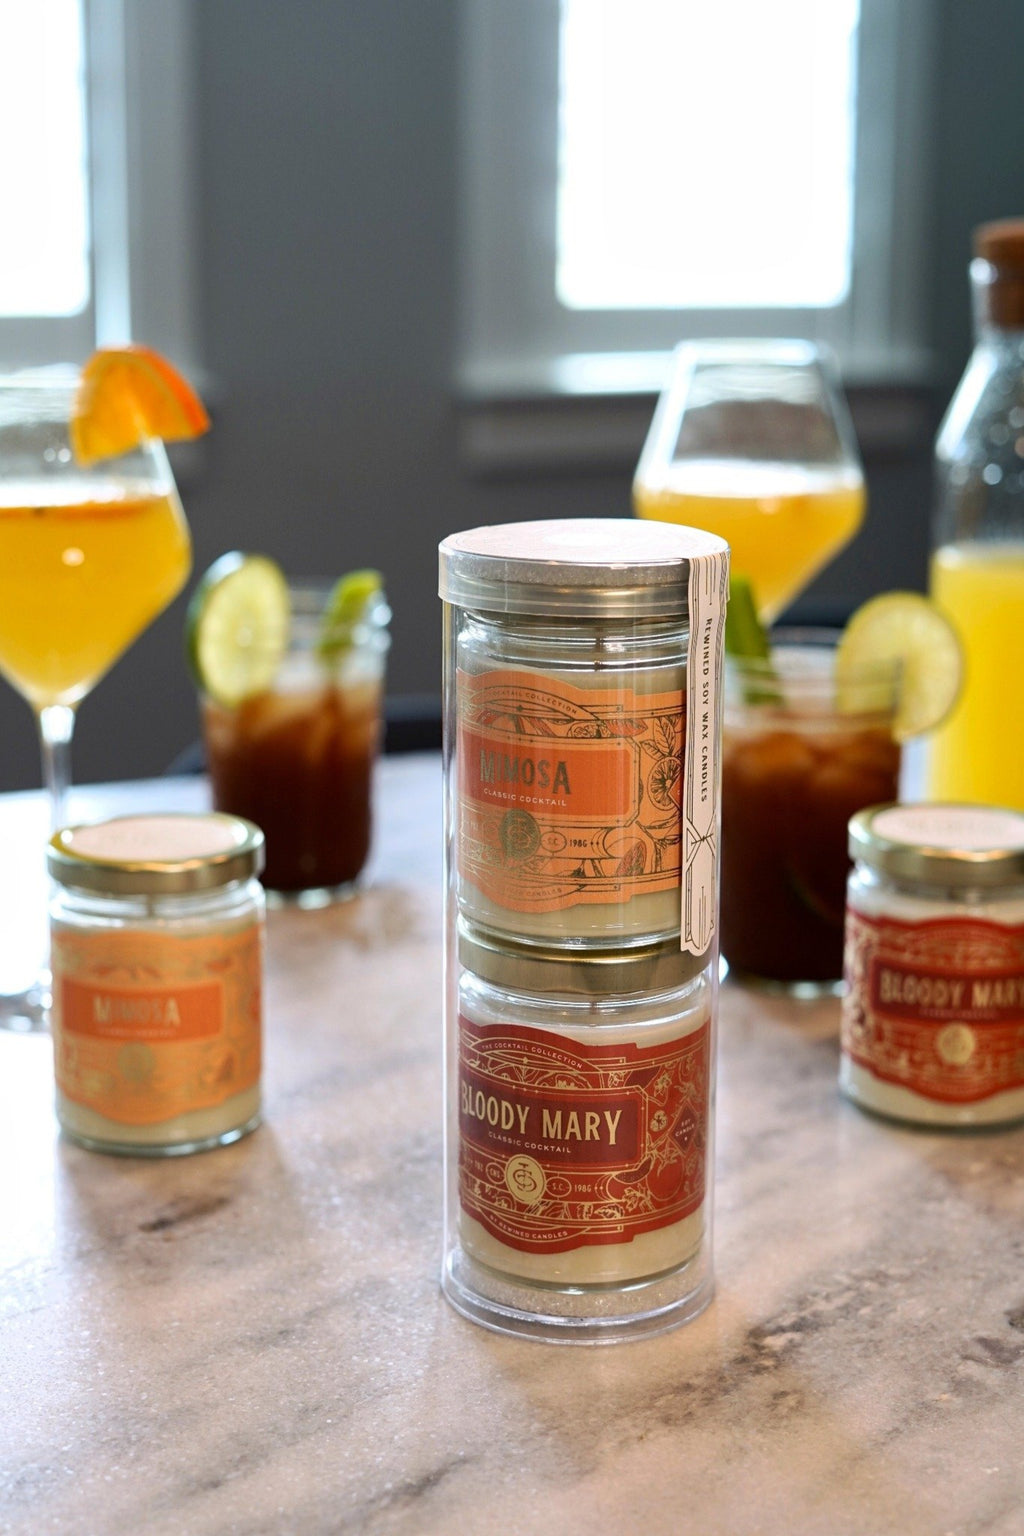 Mimosa and Bloody Mary Brunch Gift Set